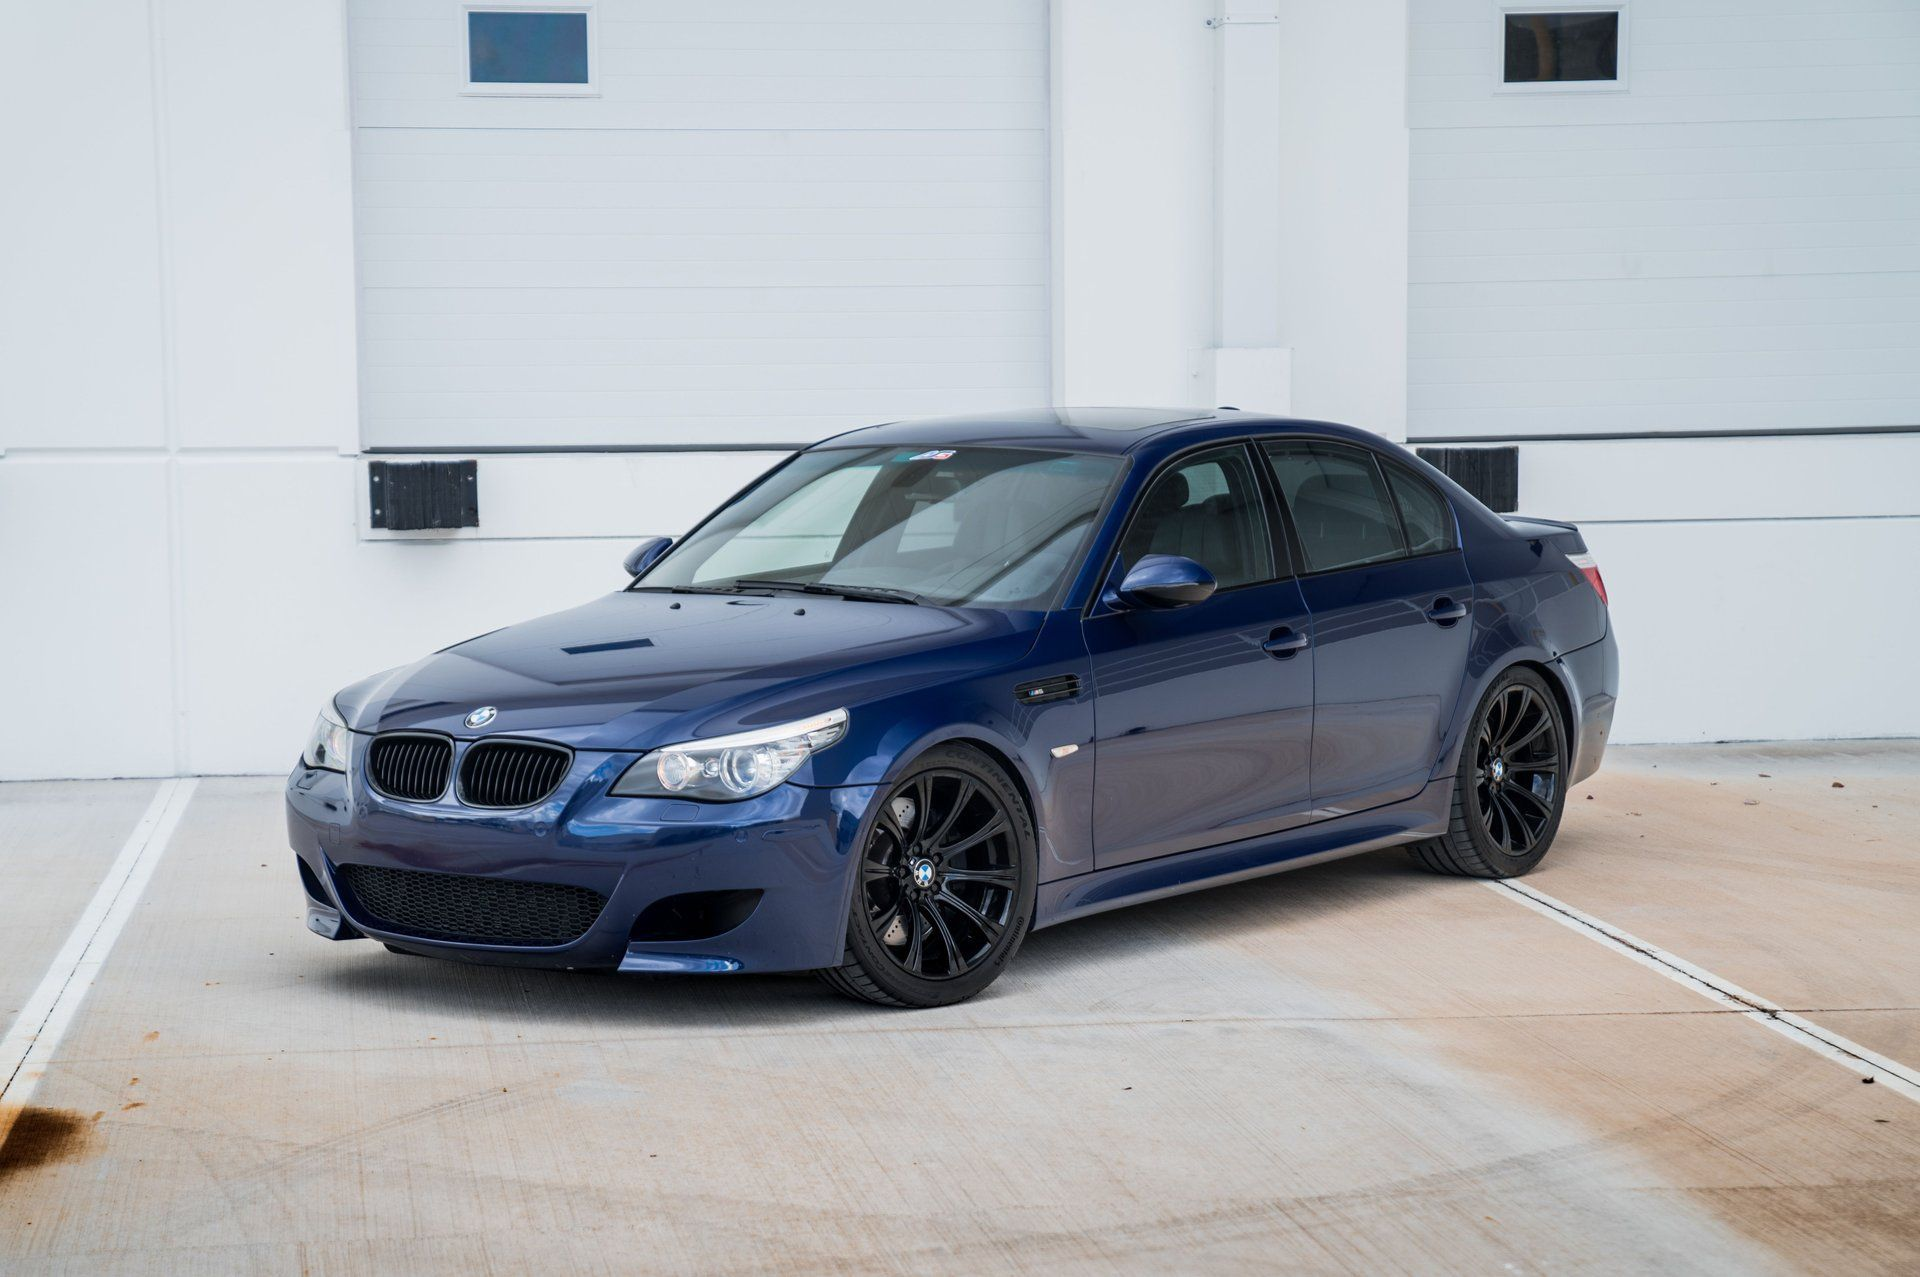 V10 With A Manual 2010 Bmw E60 M5 In 2020 Bmw Collector Cars For Sale Bmw E60